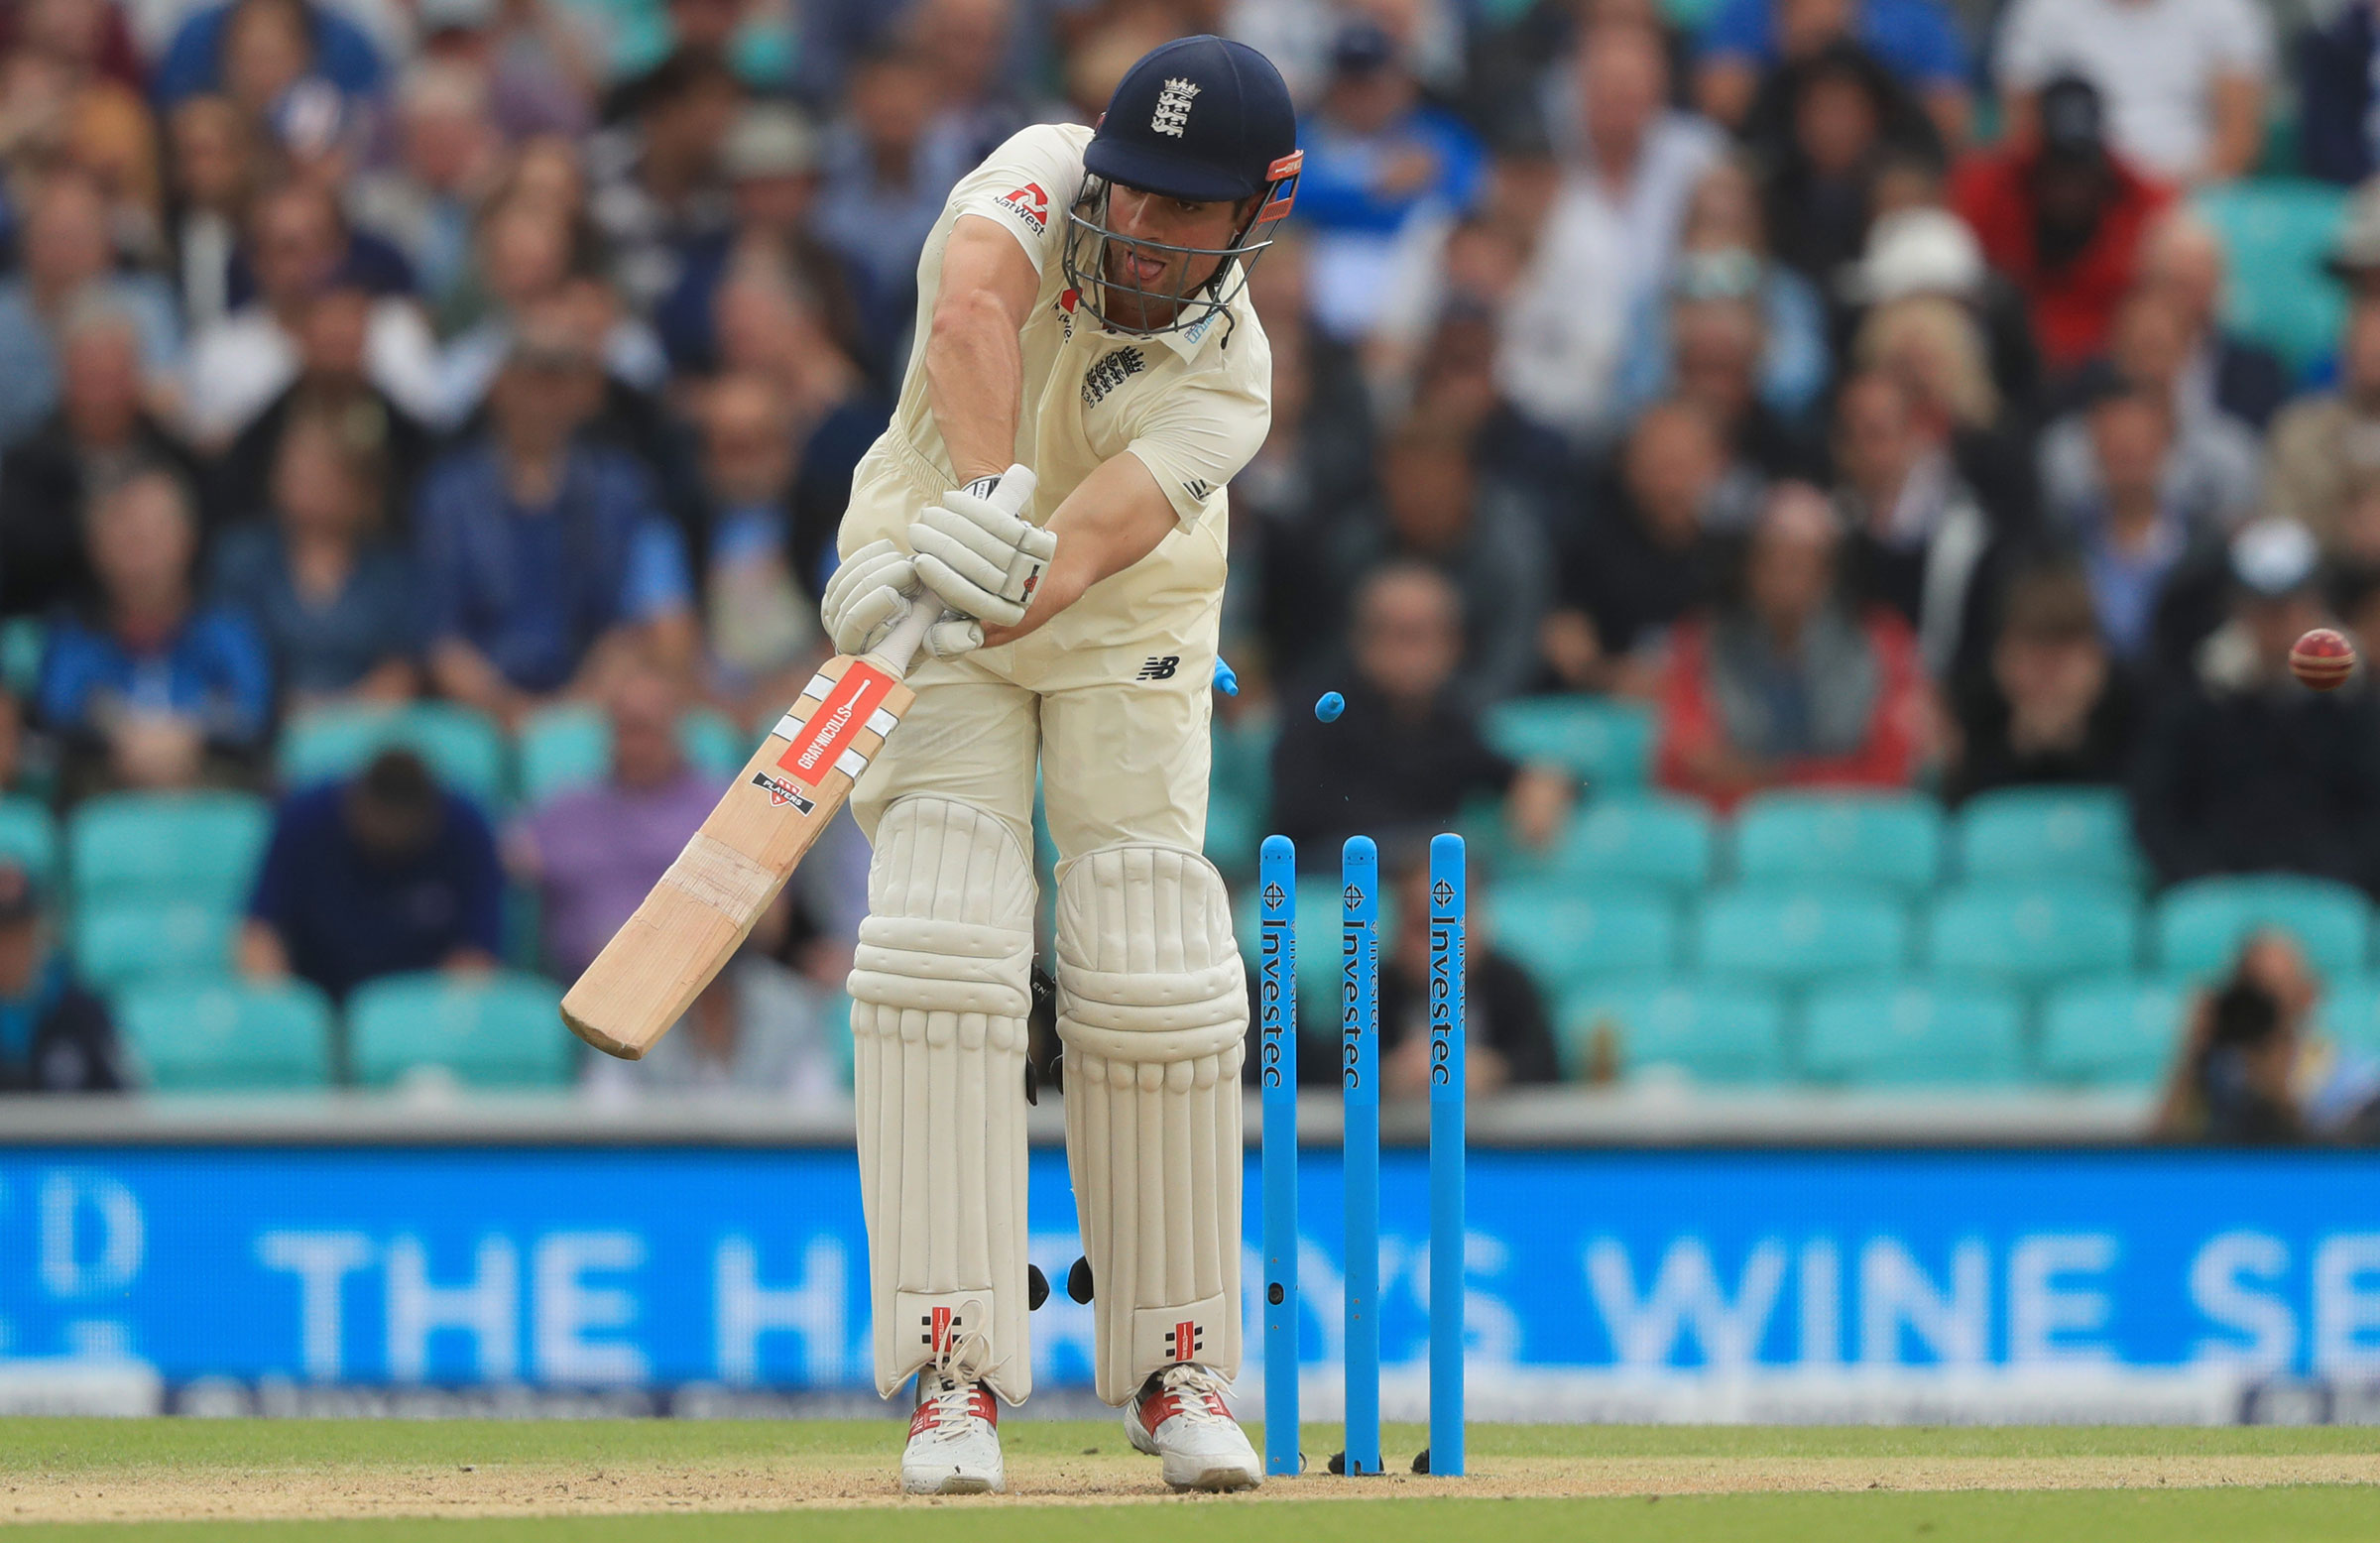 Cook is undone by a beauty from Morkel // Getty Images